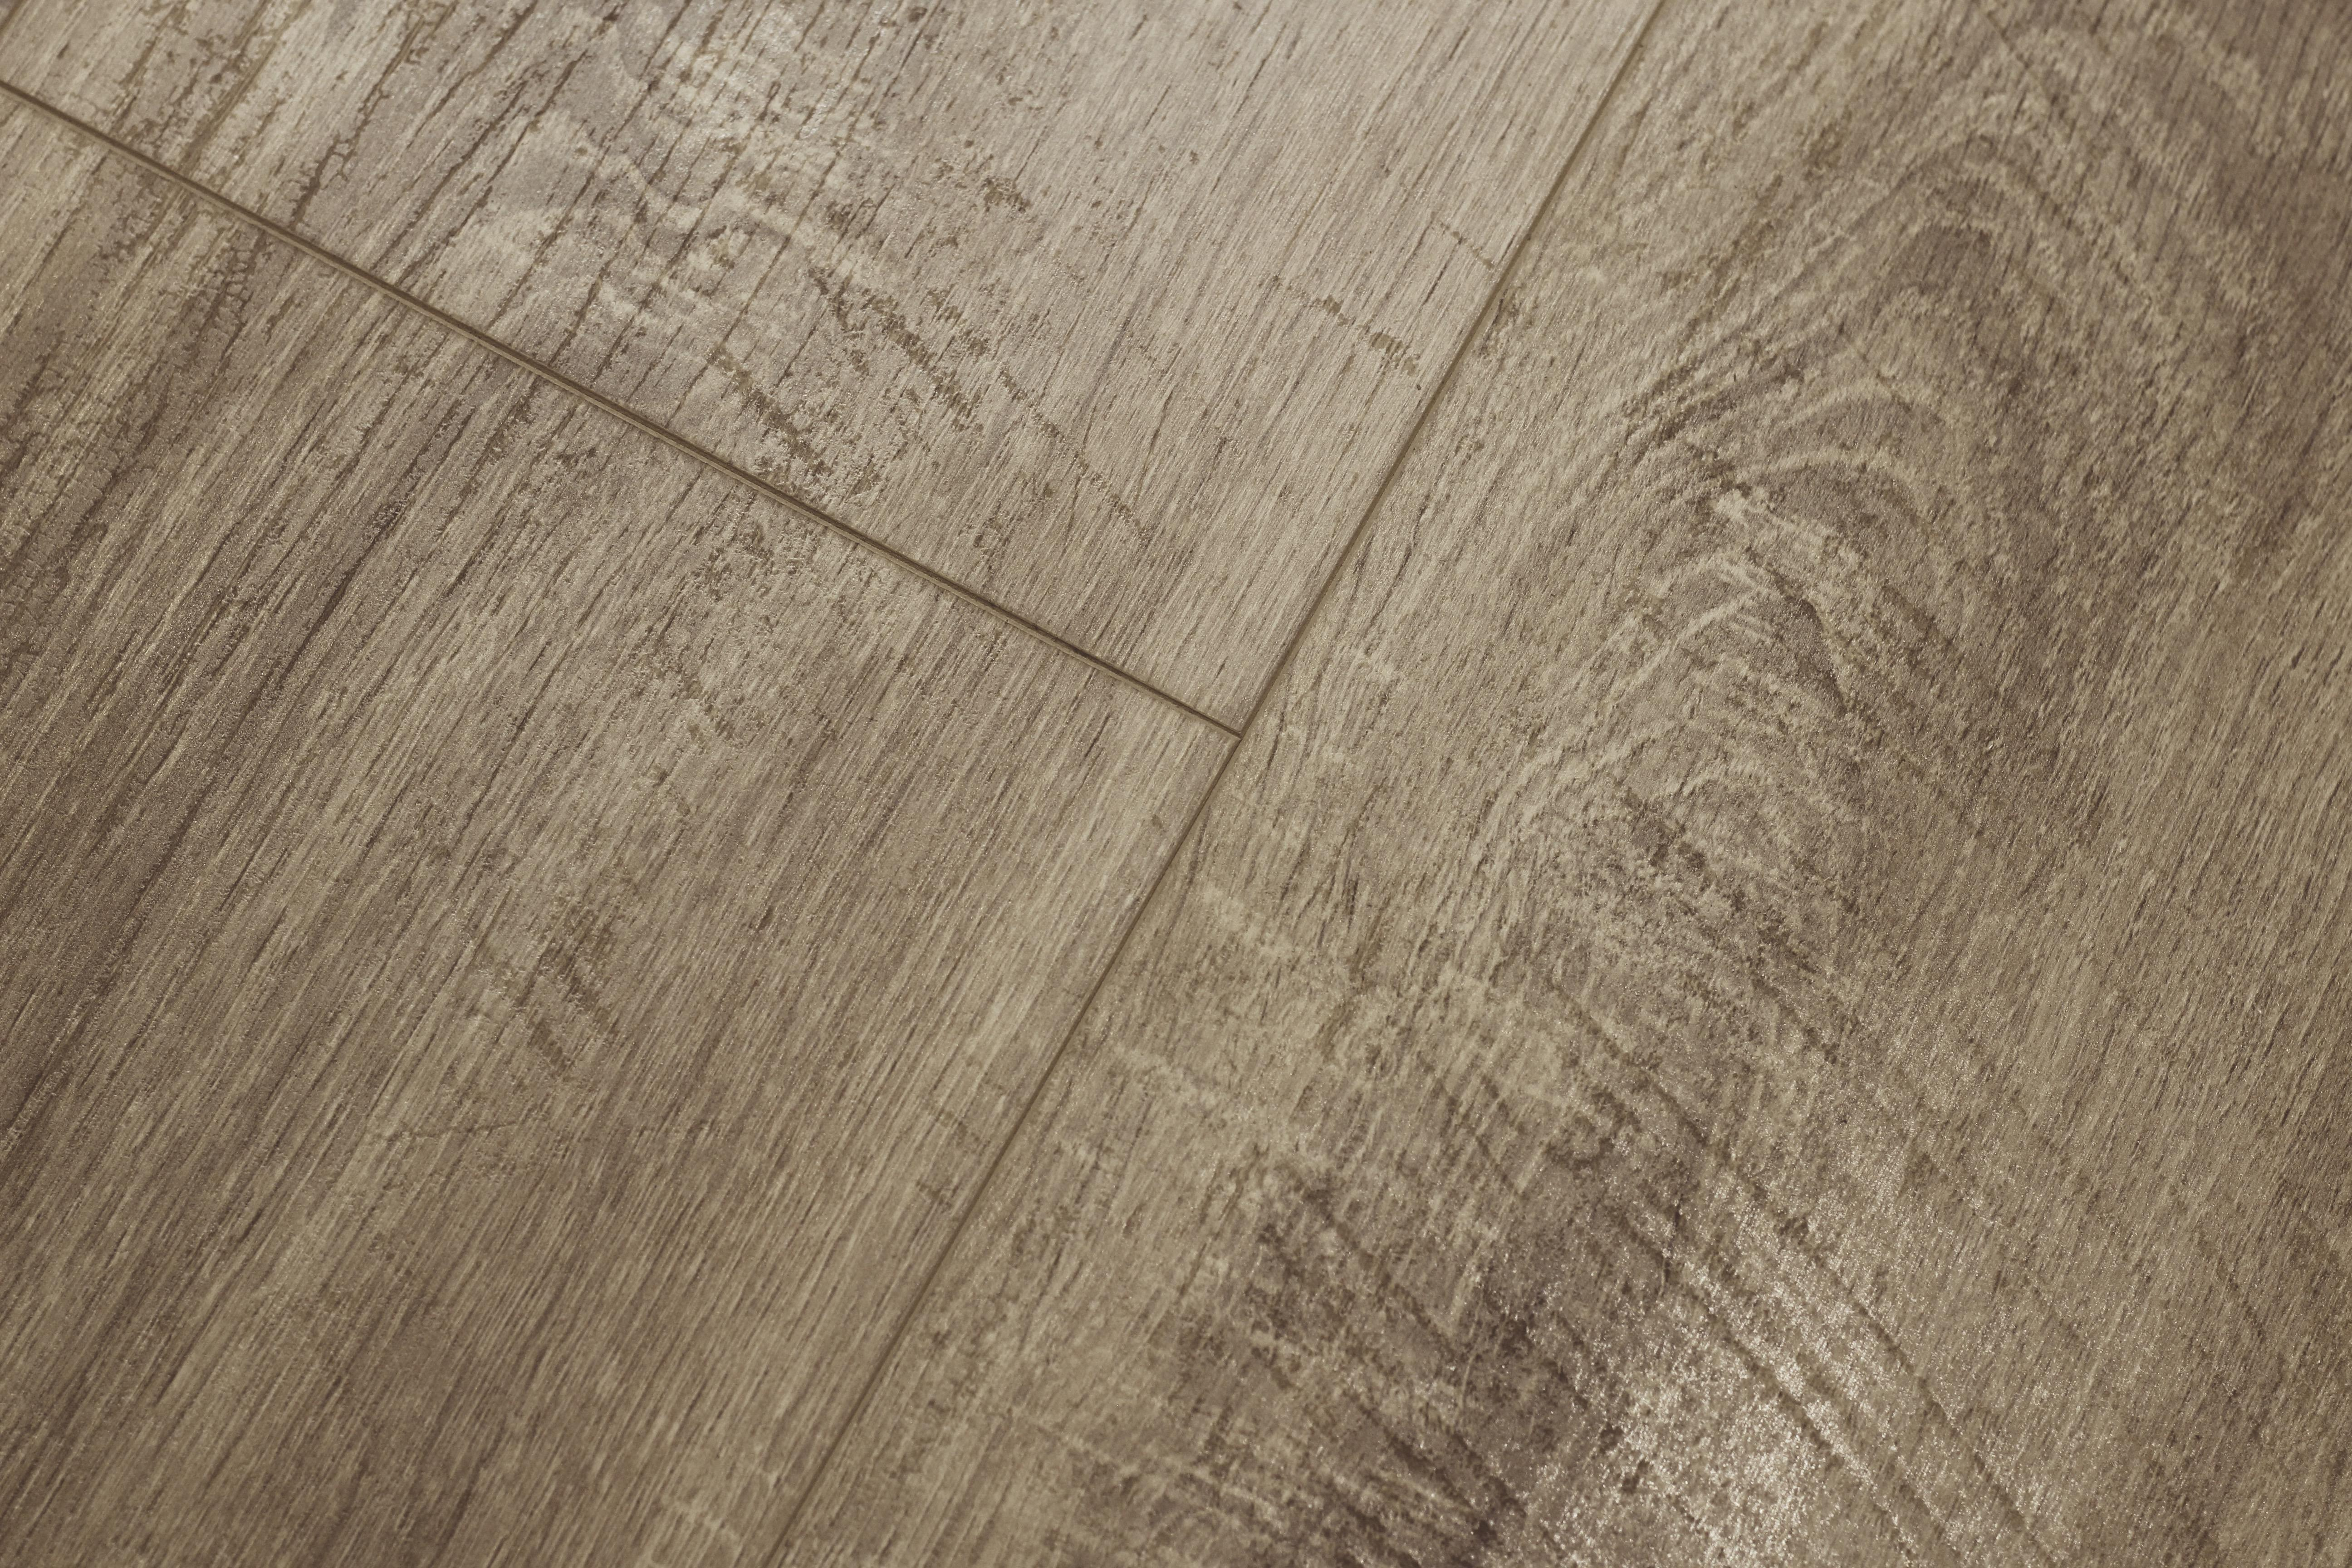 Baelea Concerto Drift Oak with Saw Cuts 8mm Laminate Flooring Click System